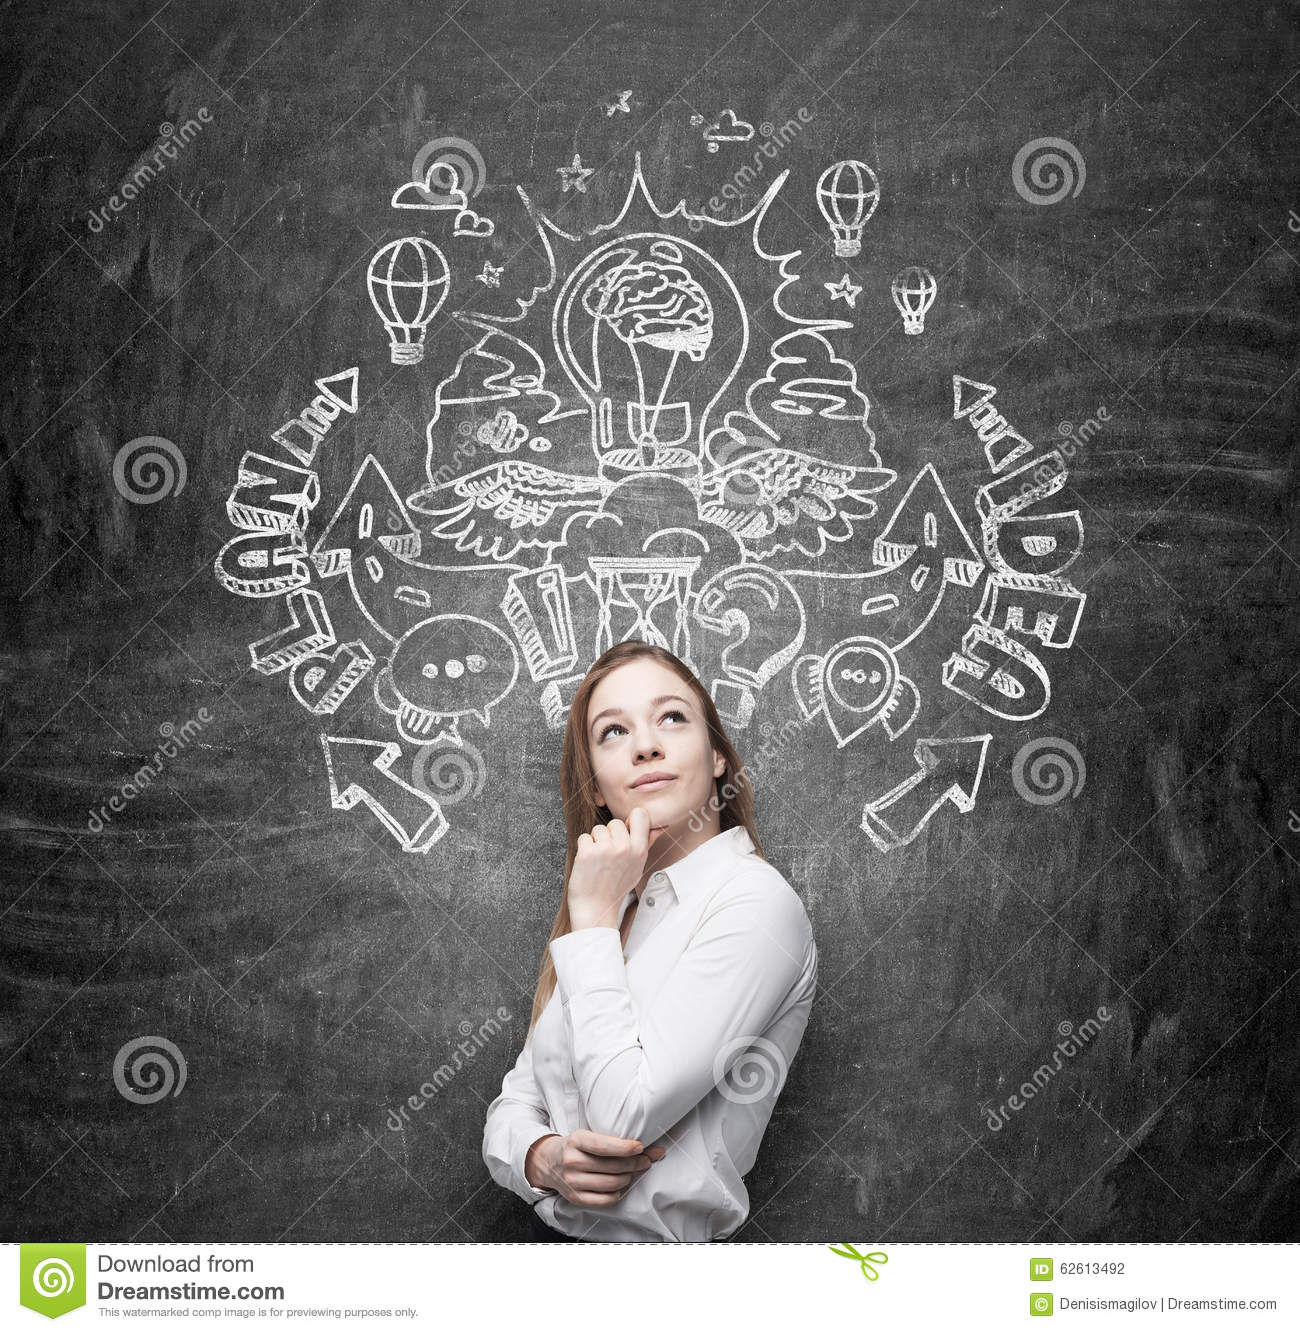 A beautiful business lady is dreaming about an invention of new business ideas for business development. Business plan and idea sk